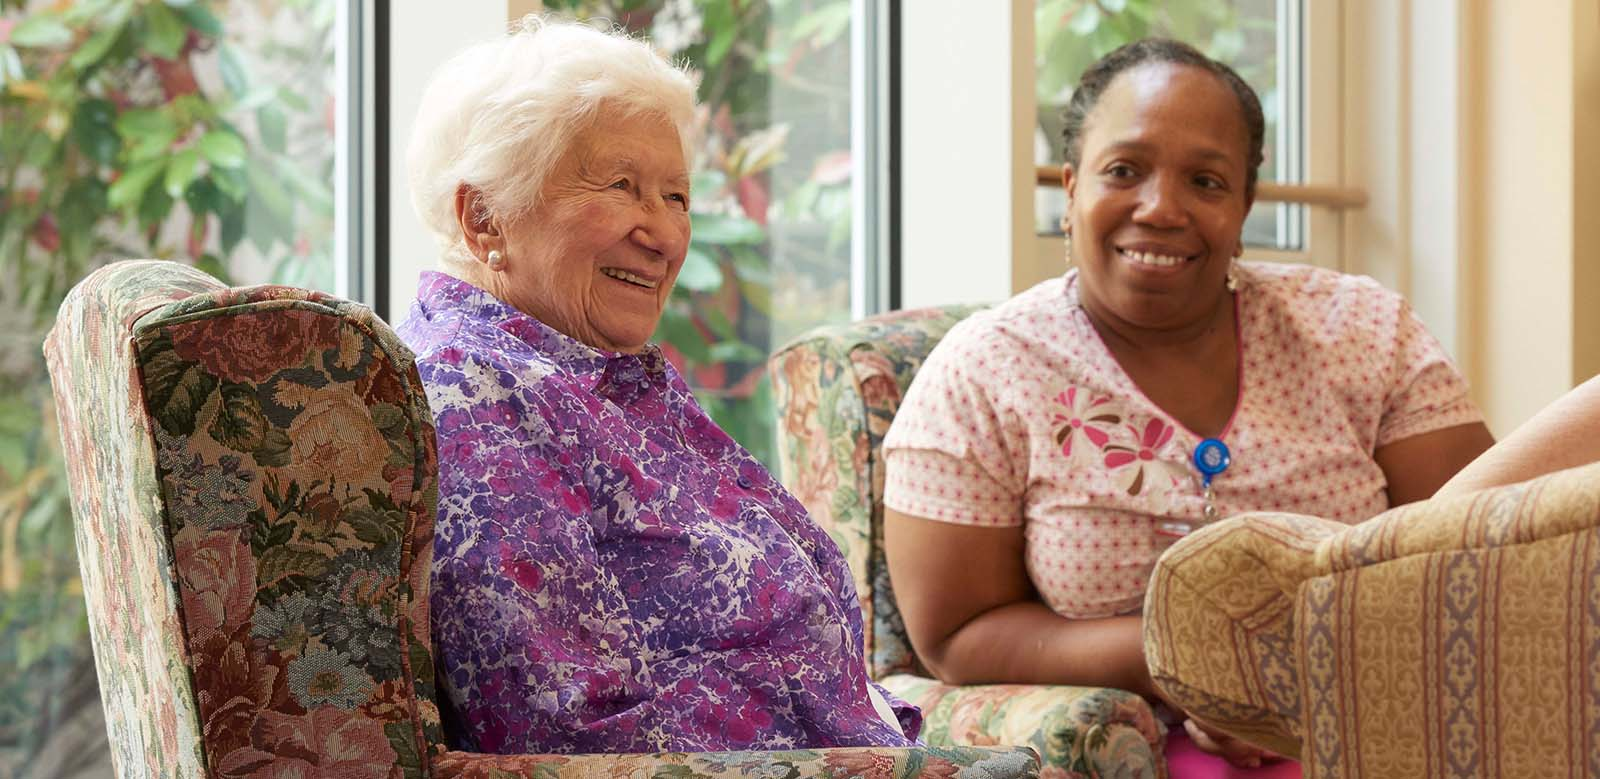 Personal Care for Residents who need some assistance with tasks of everyday living